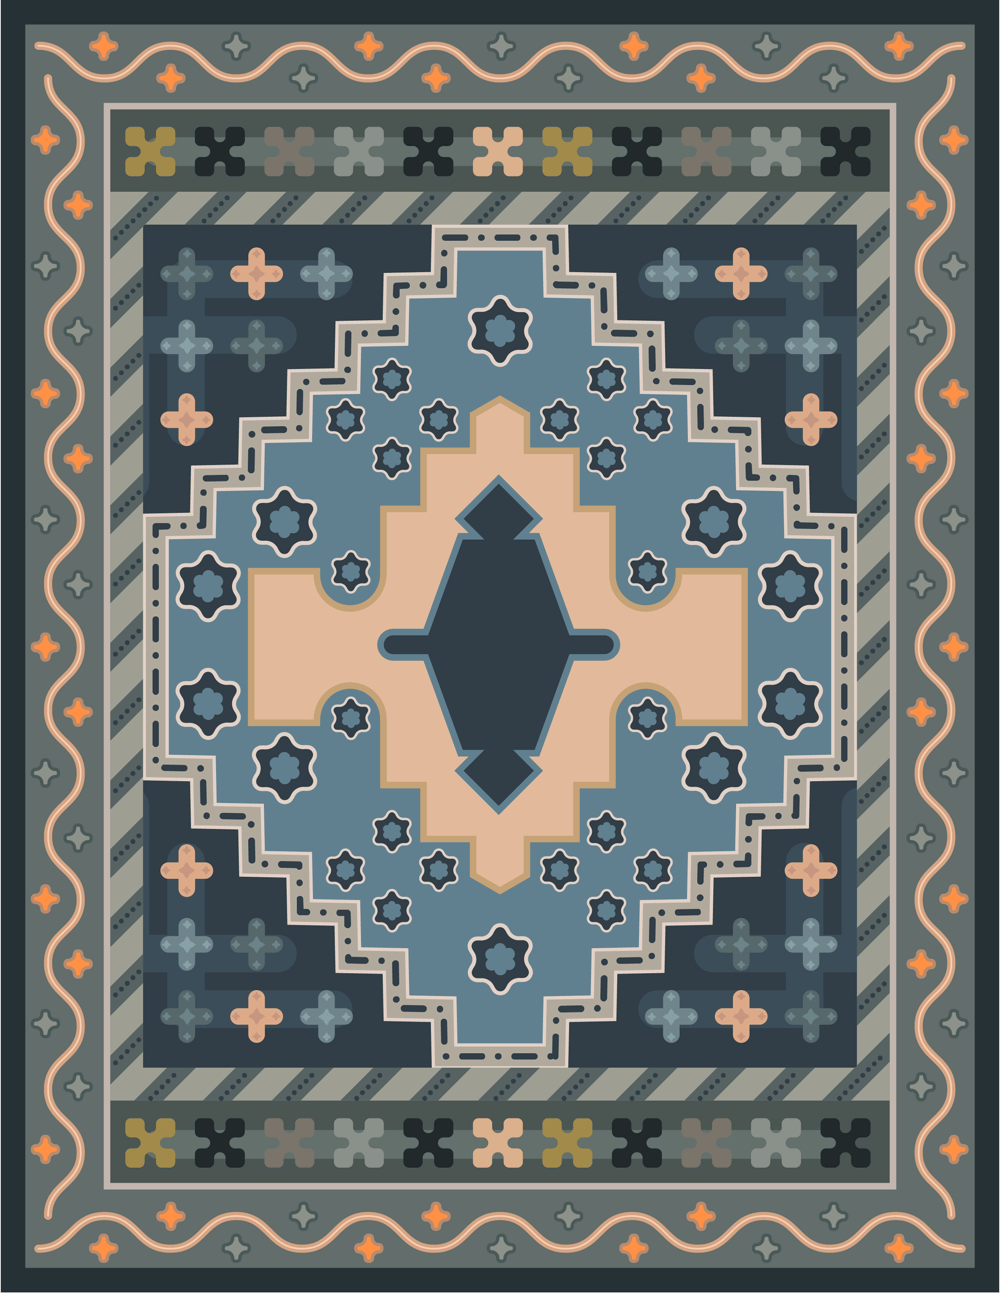 An Oriental rug without the pen tool - image 1 - student project